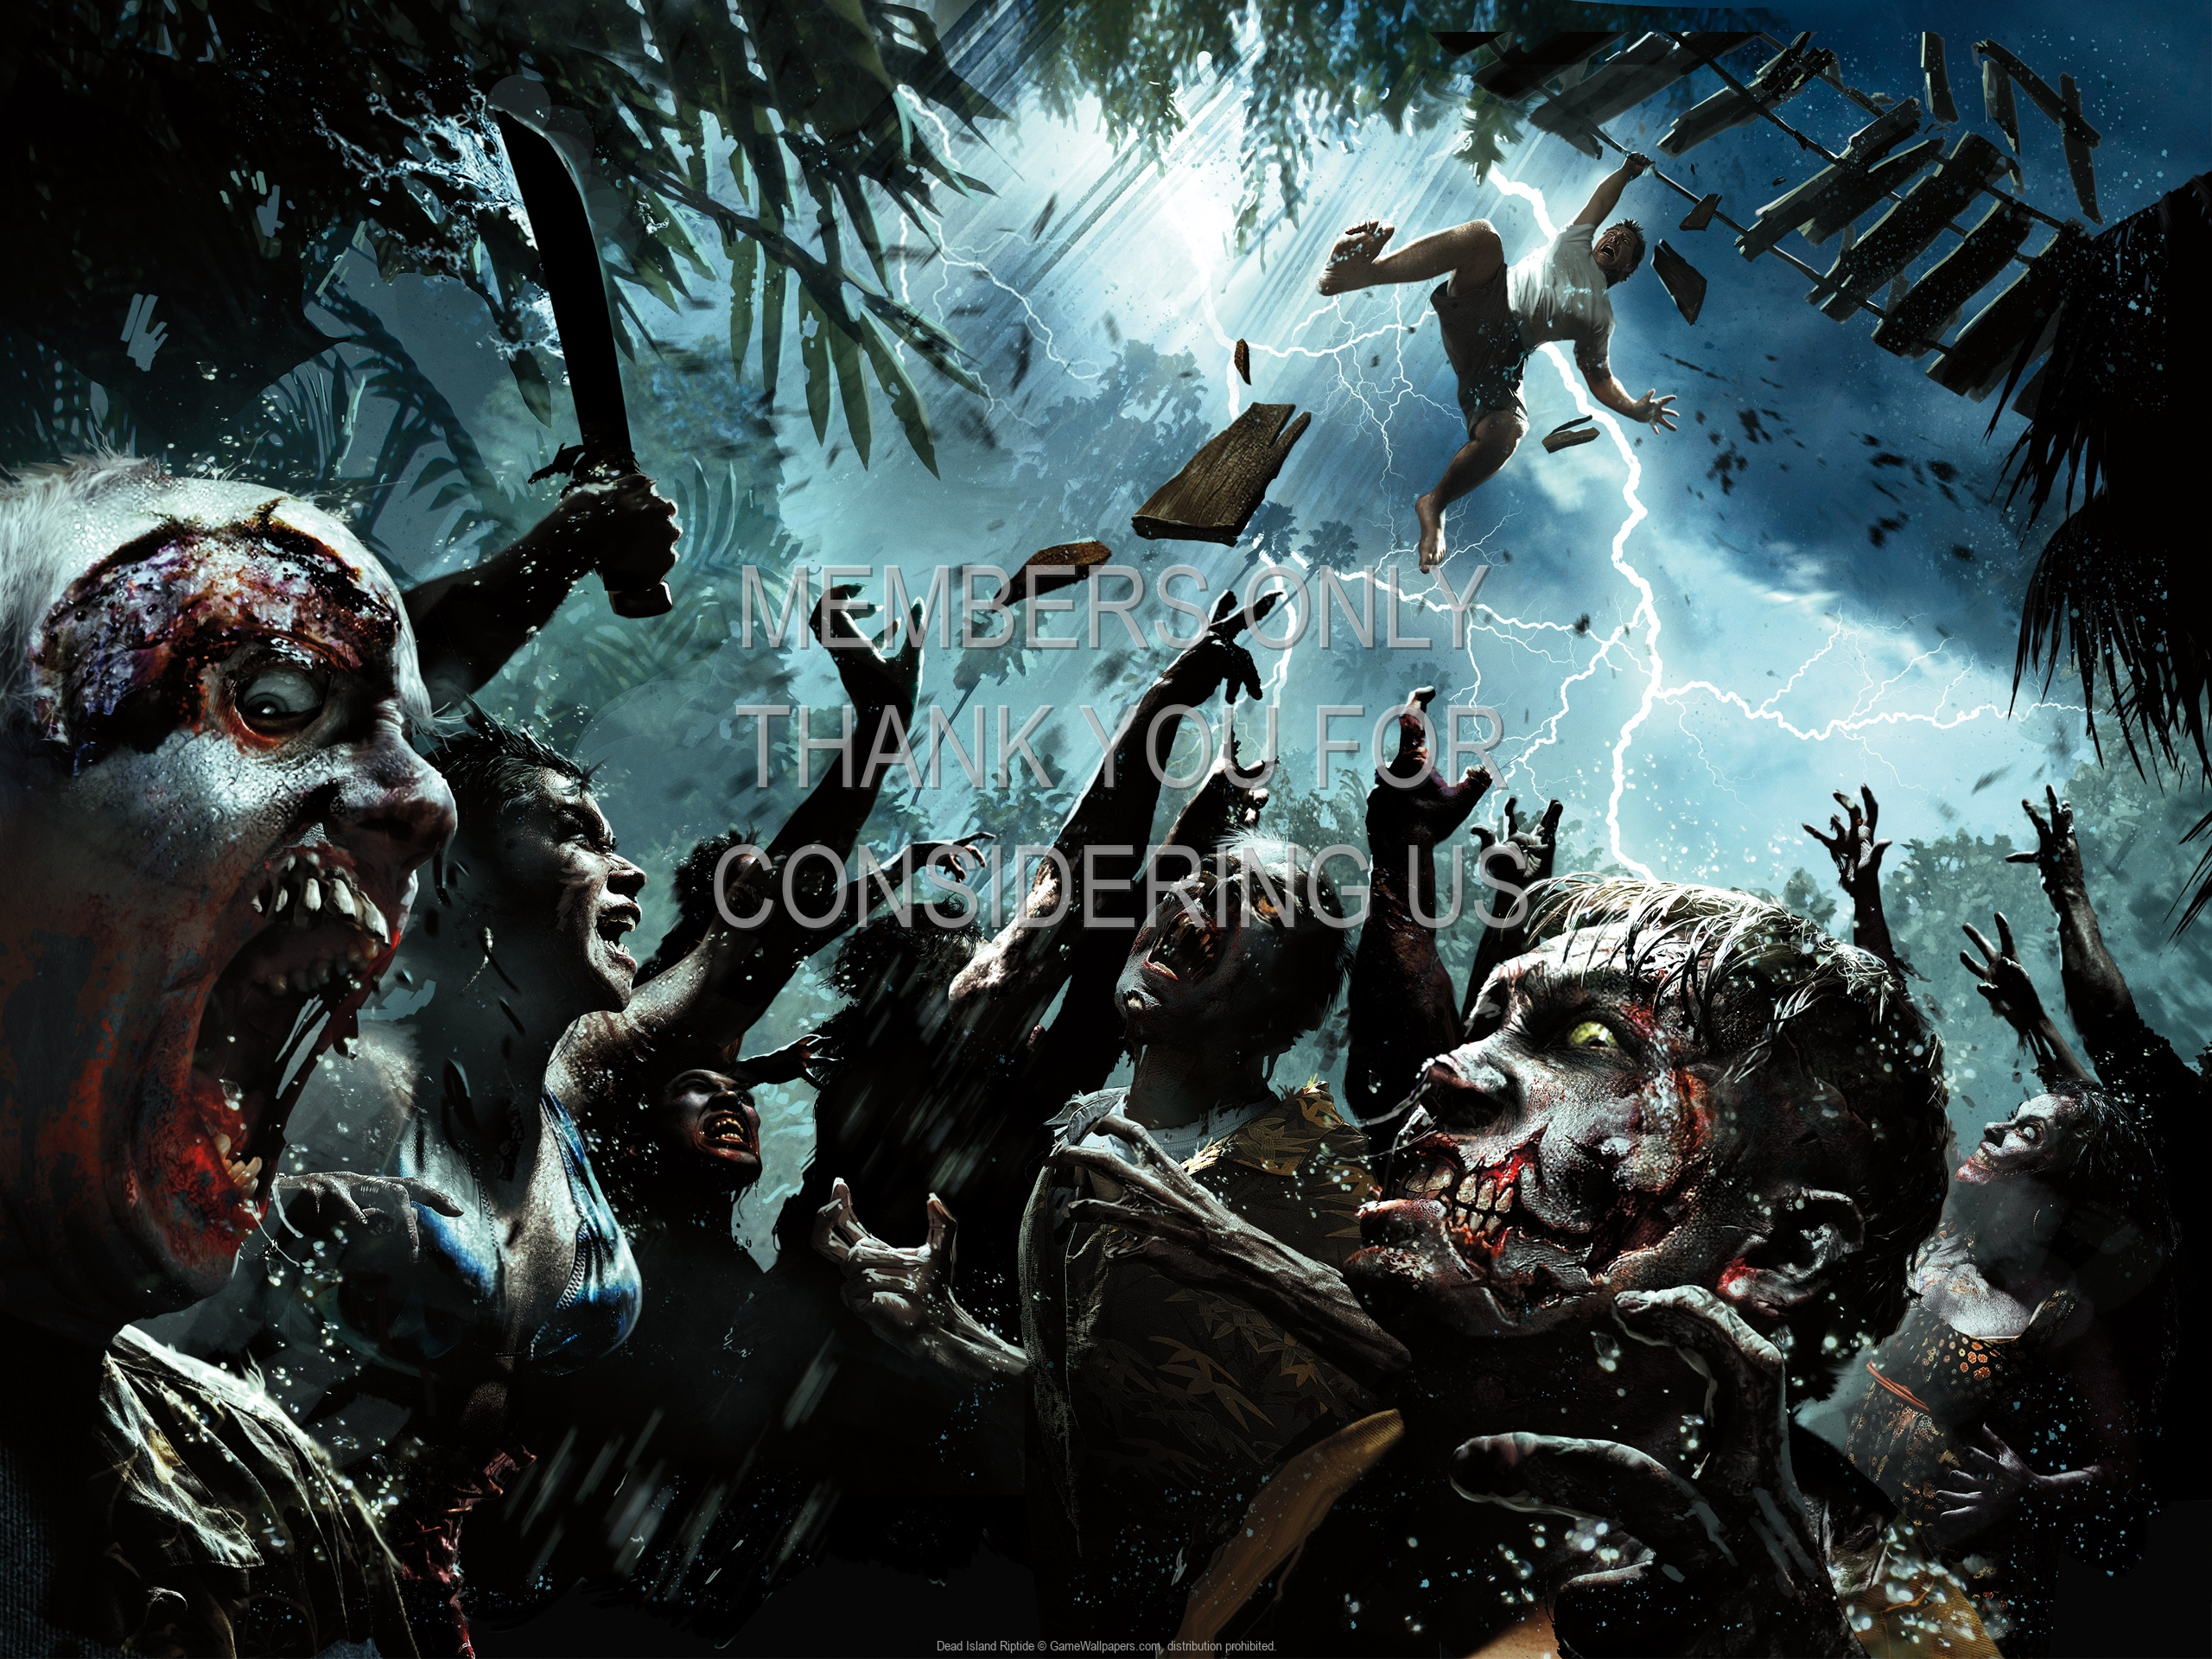 Dead Island Riptide 1920x1080 Mobile wallpaper or background 02